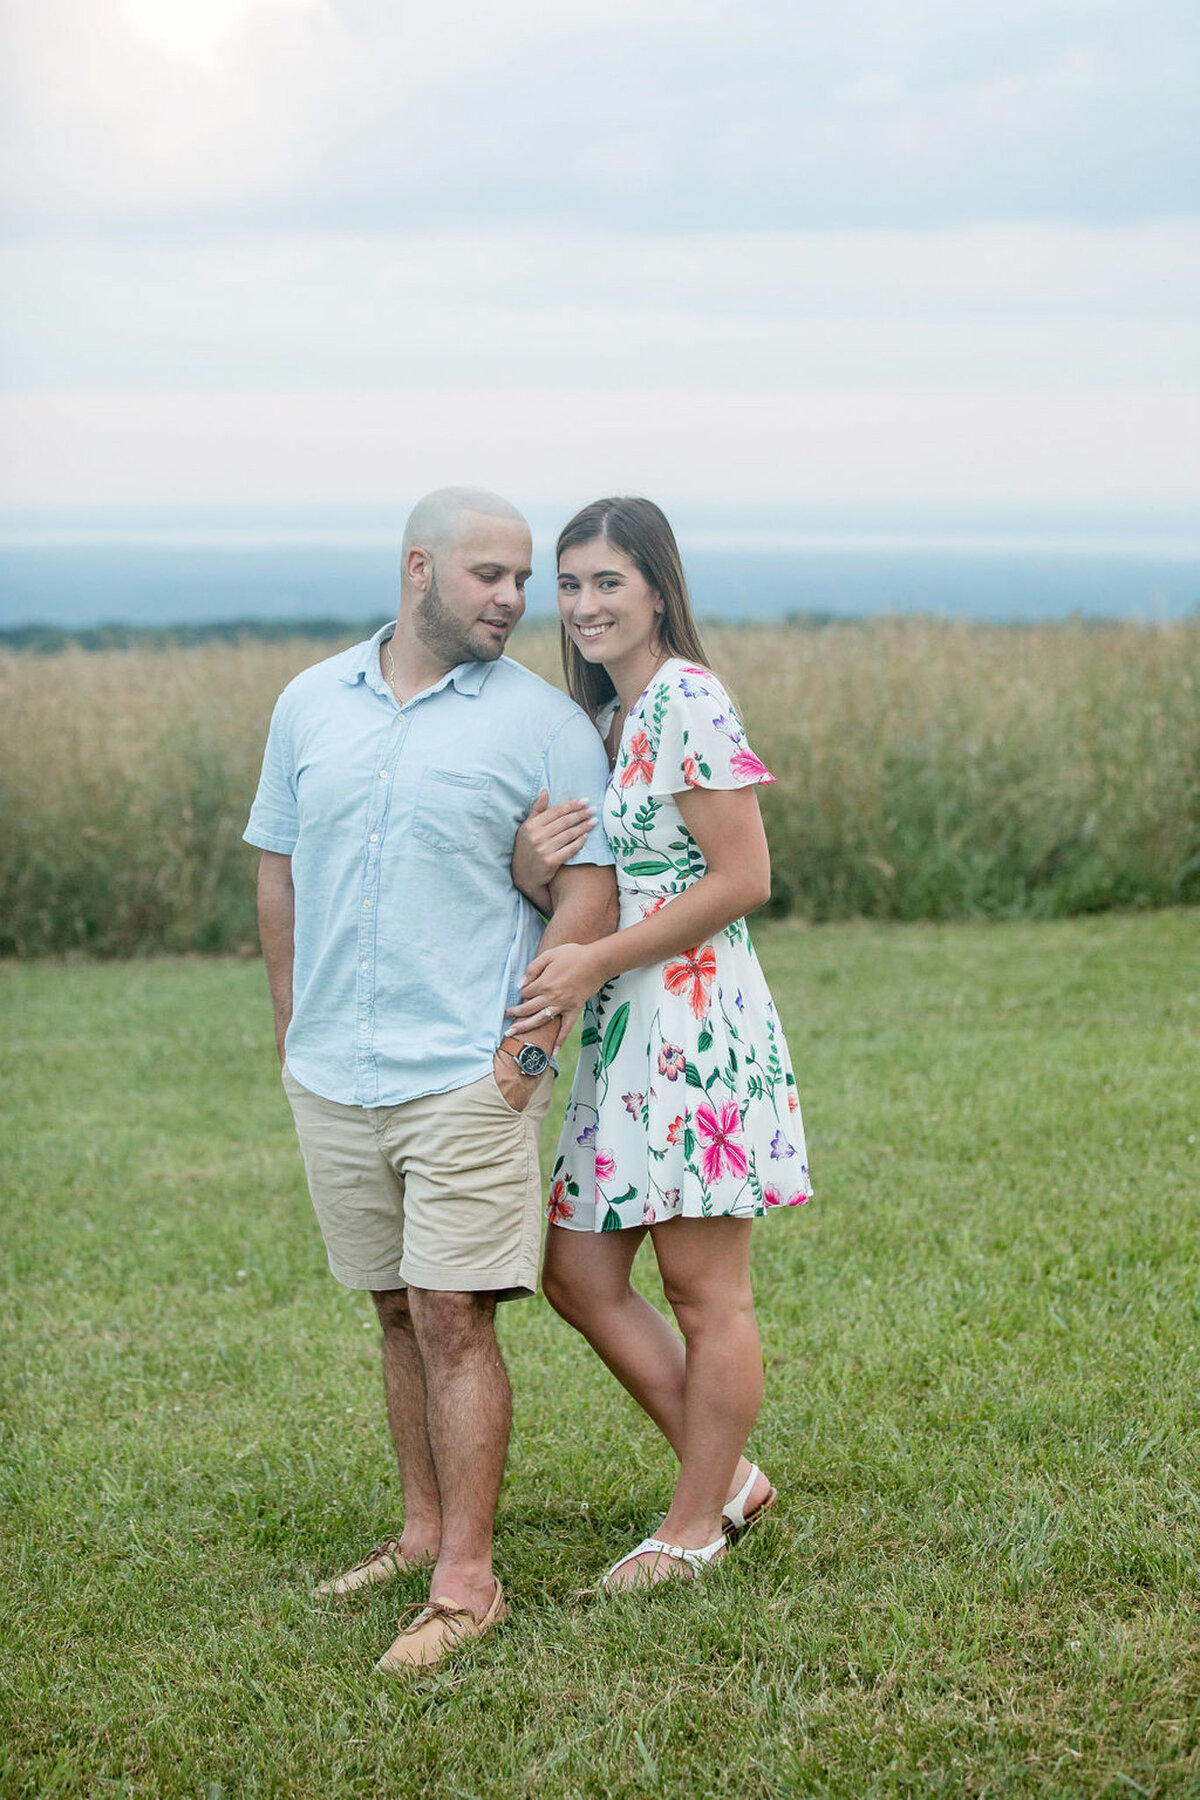 Rachel-Elise-Photography-Syracuse-New-York-Engagement-Shoot-Photographer-36